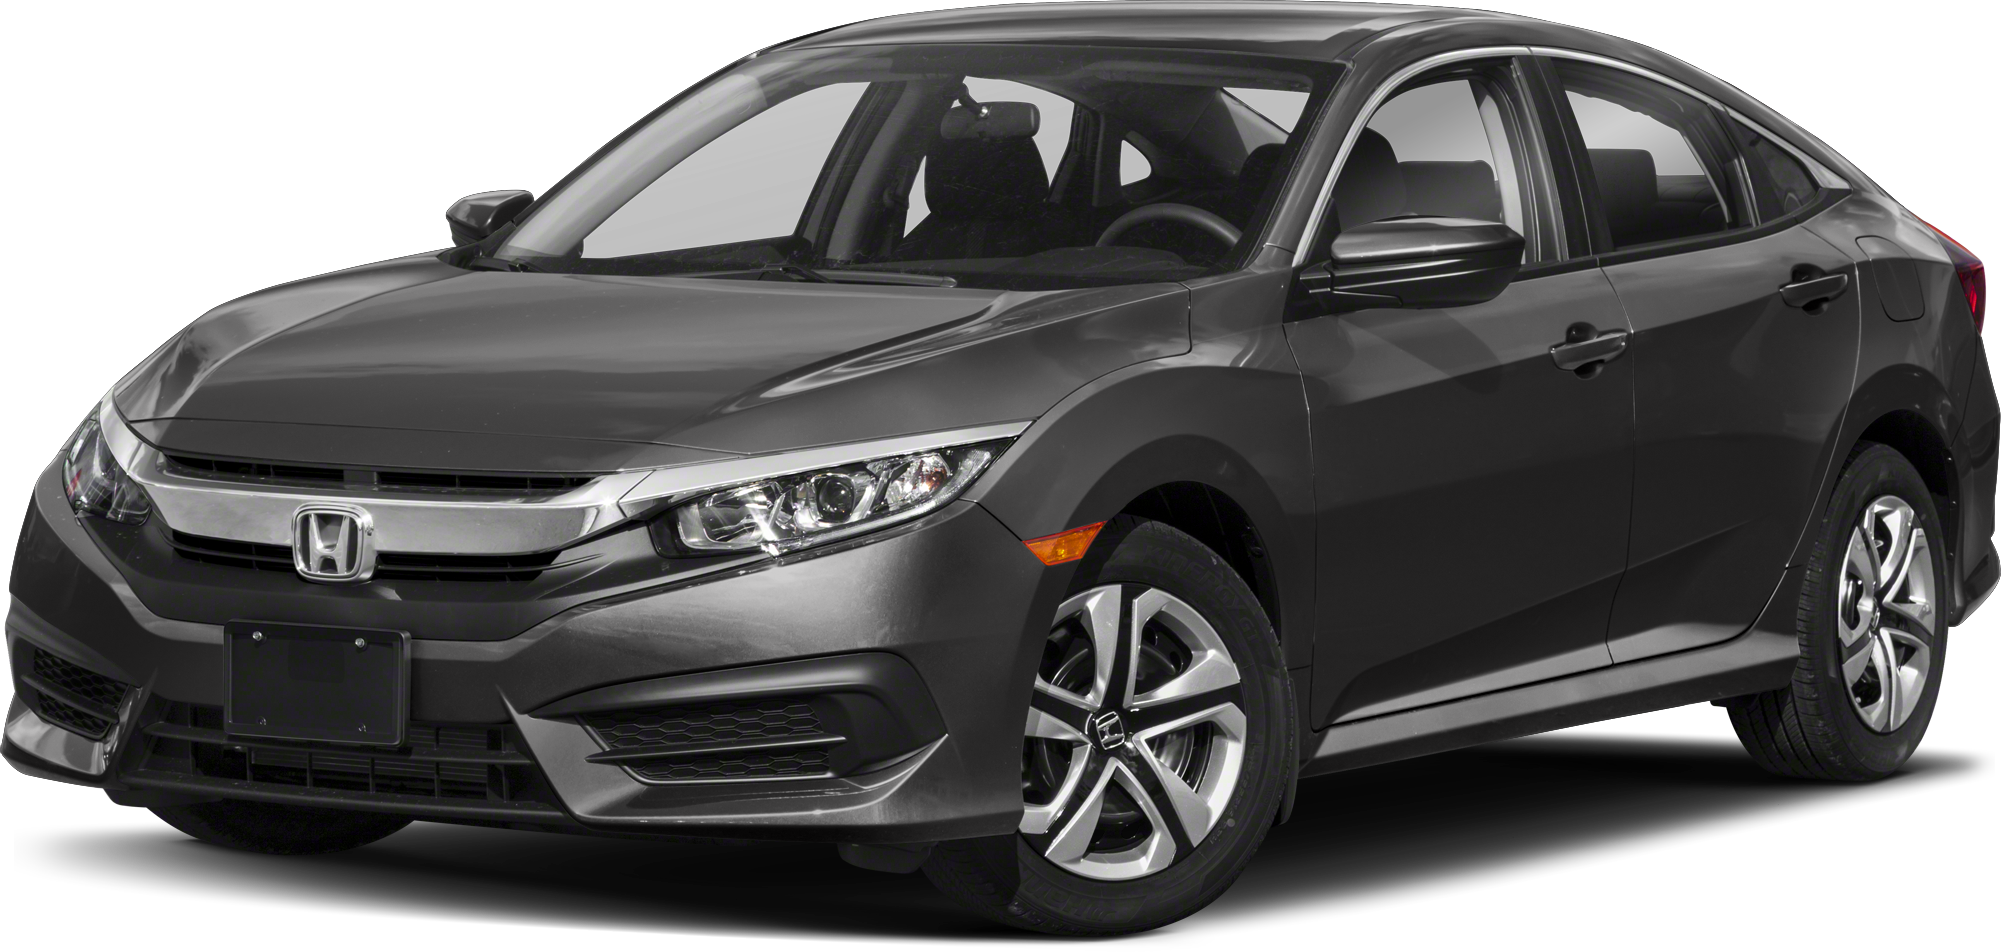 New 2018 Honda Civic Lease and Finance Offers